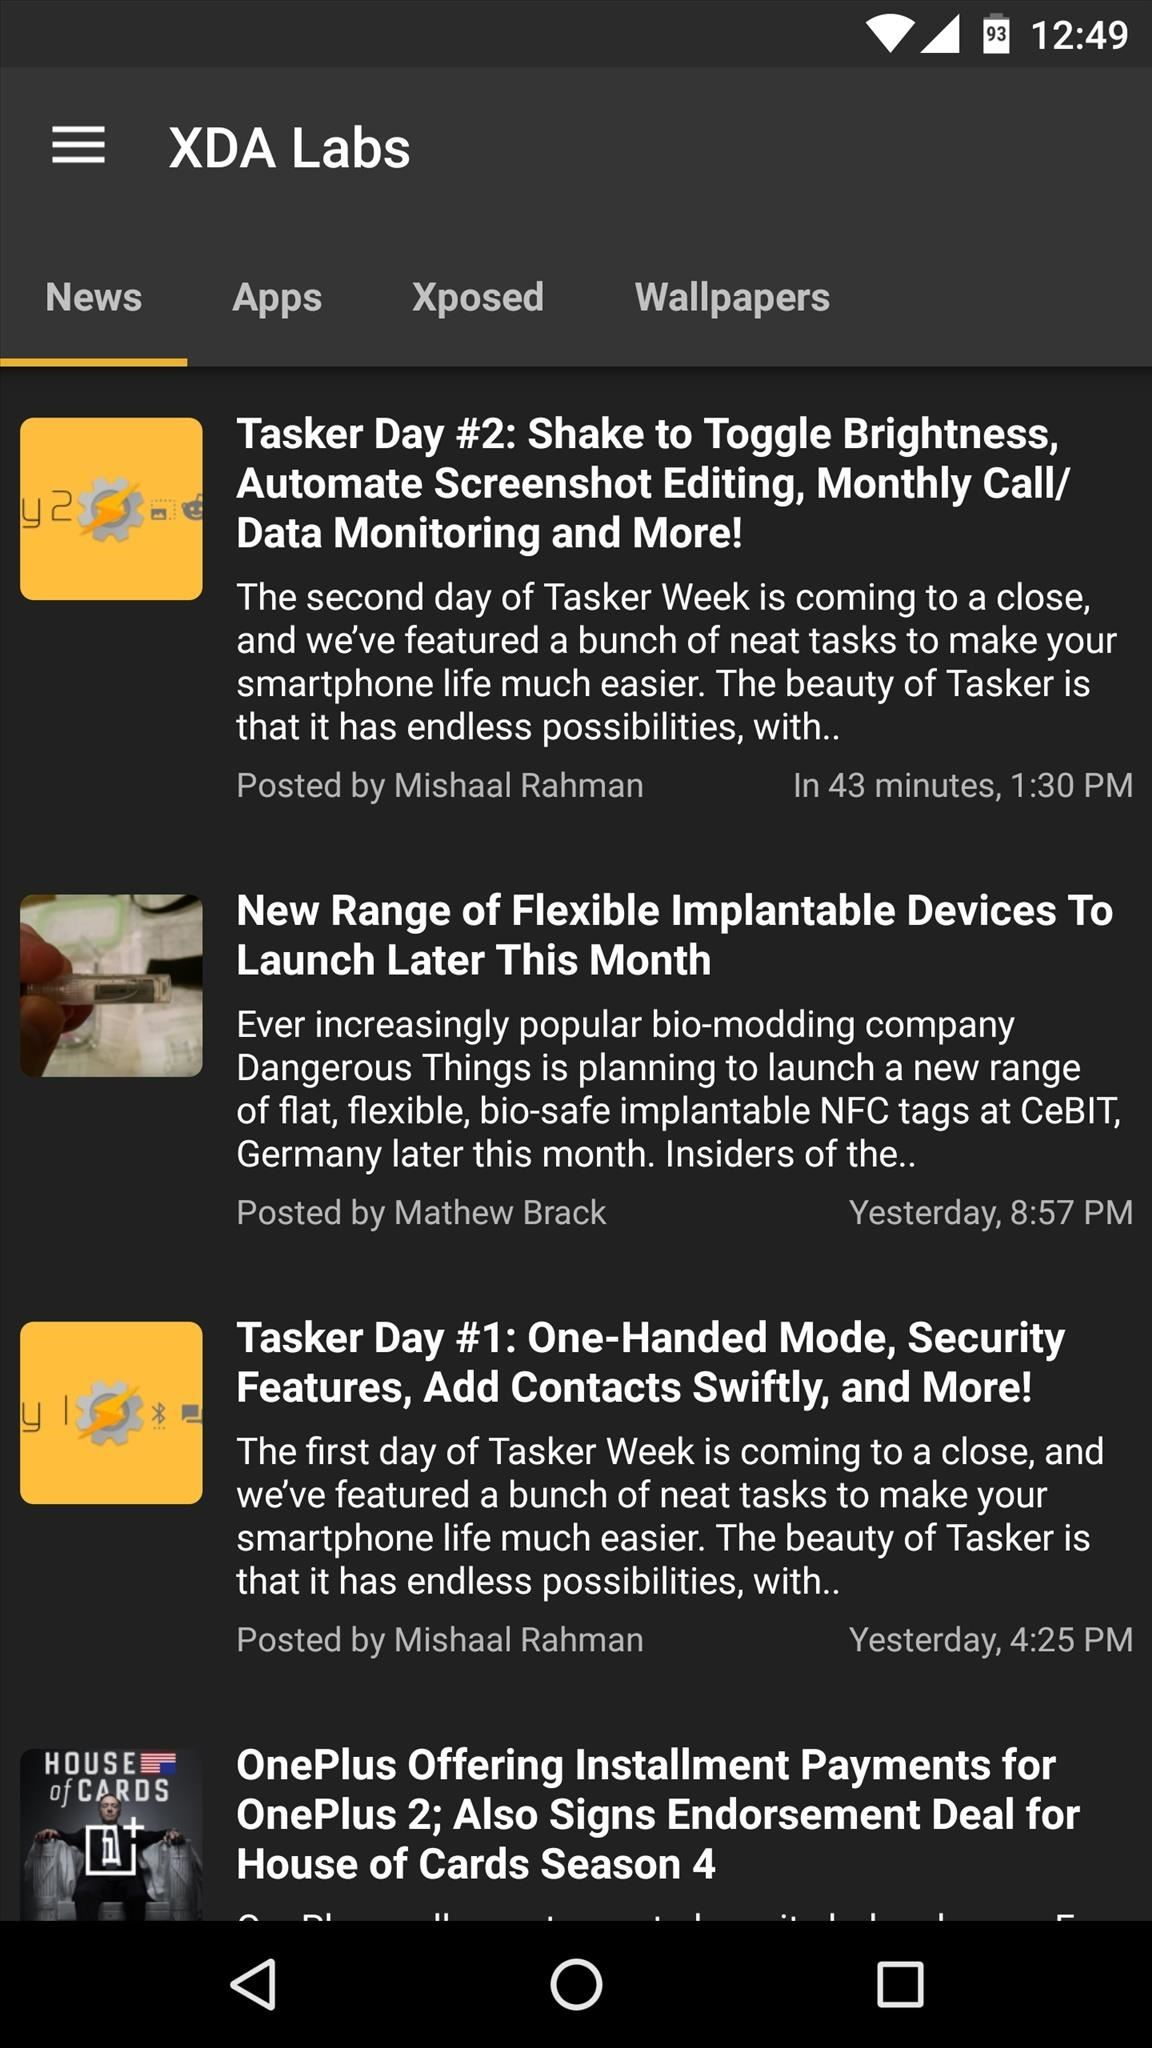 XDA Labs Makes Installing Third-Party Apps & Hacks Easy